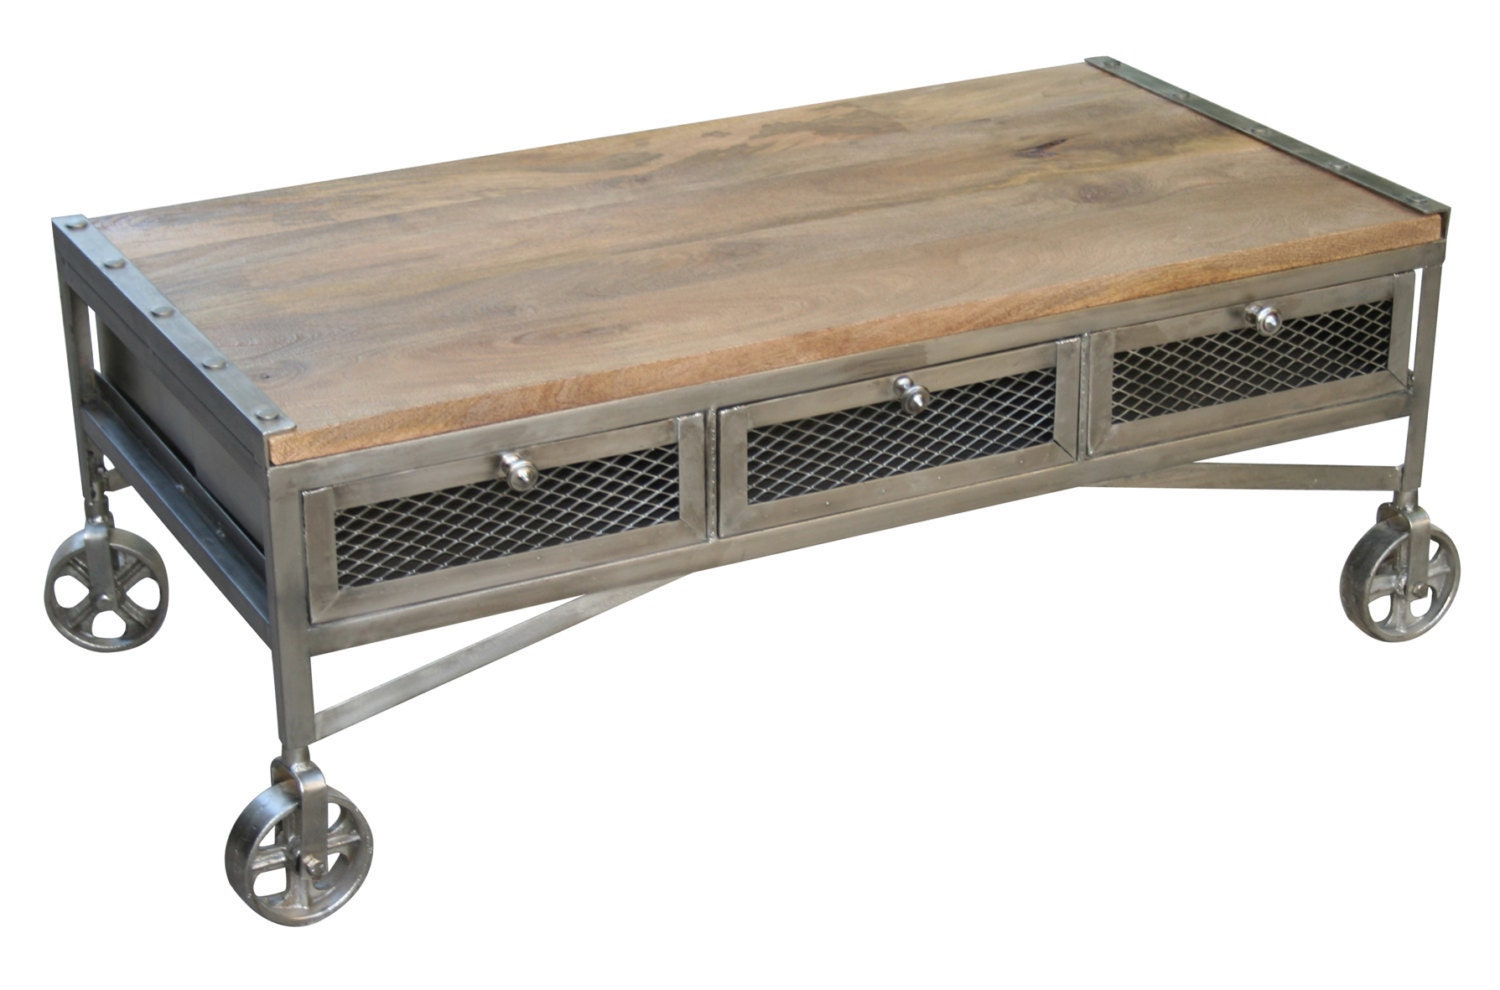 Wood And Steel Coffee Tables On Wheels By Inyourplacefurniture